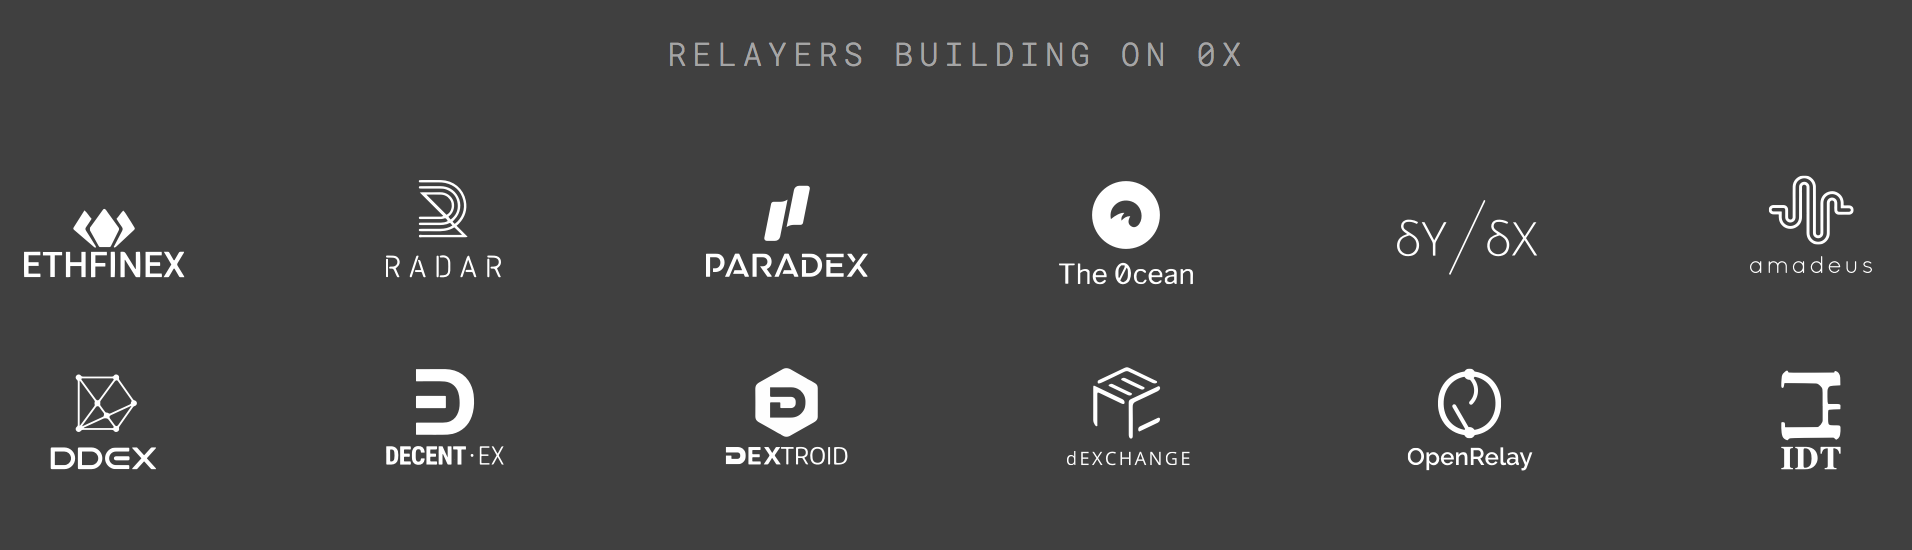 Relayers currently building on 0x, from the  official website  - view the  full list